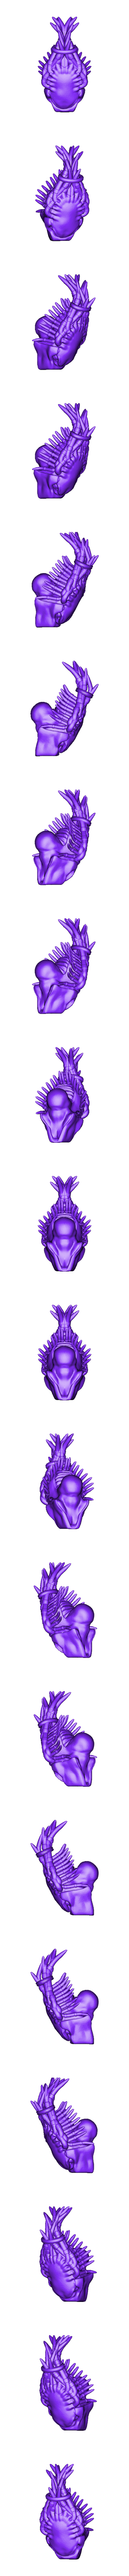 12-UMFc-00001A.stl Download free STL file Ugly Mother Flockers -or- Heads for Cannibal Chickens who joined a Cult and love 80's action movies. • 3D printing model, FelixTheCrazy